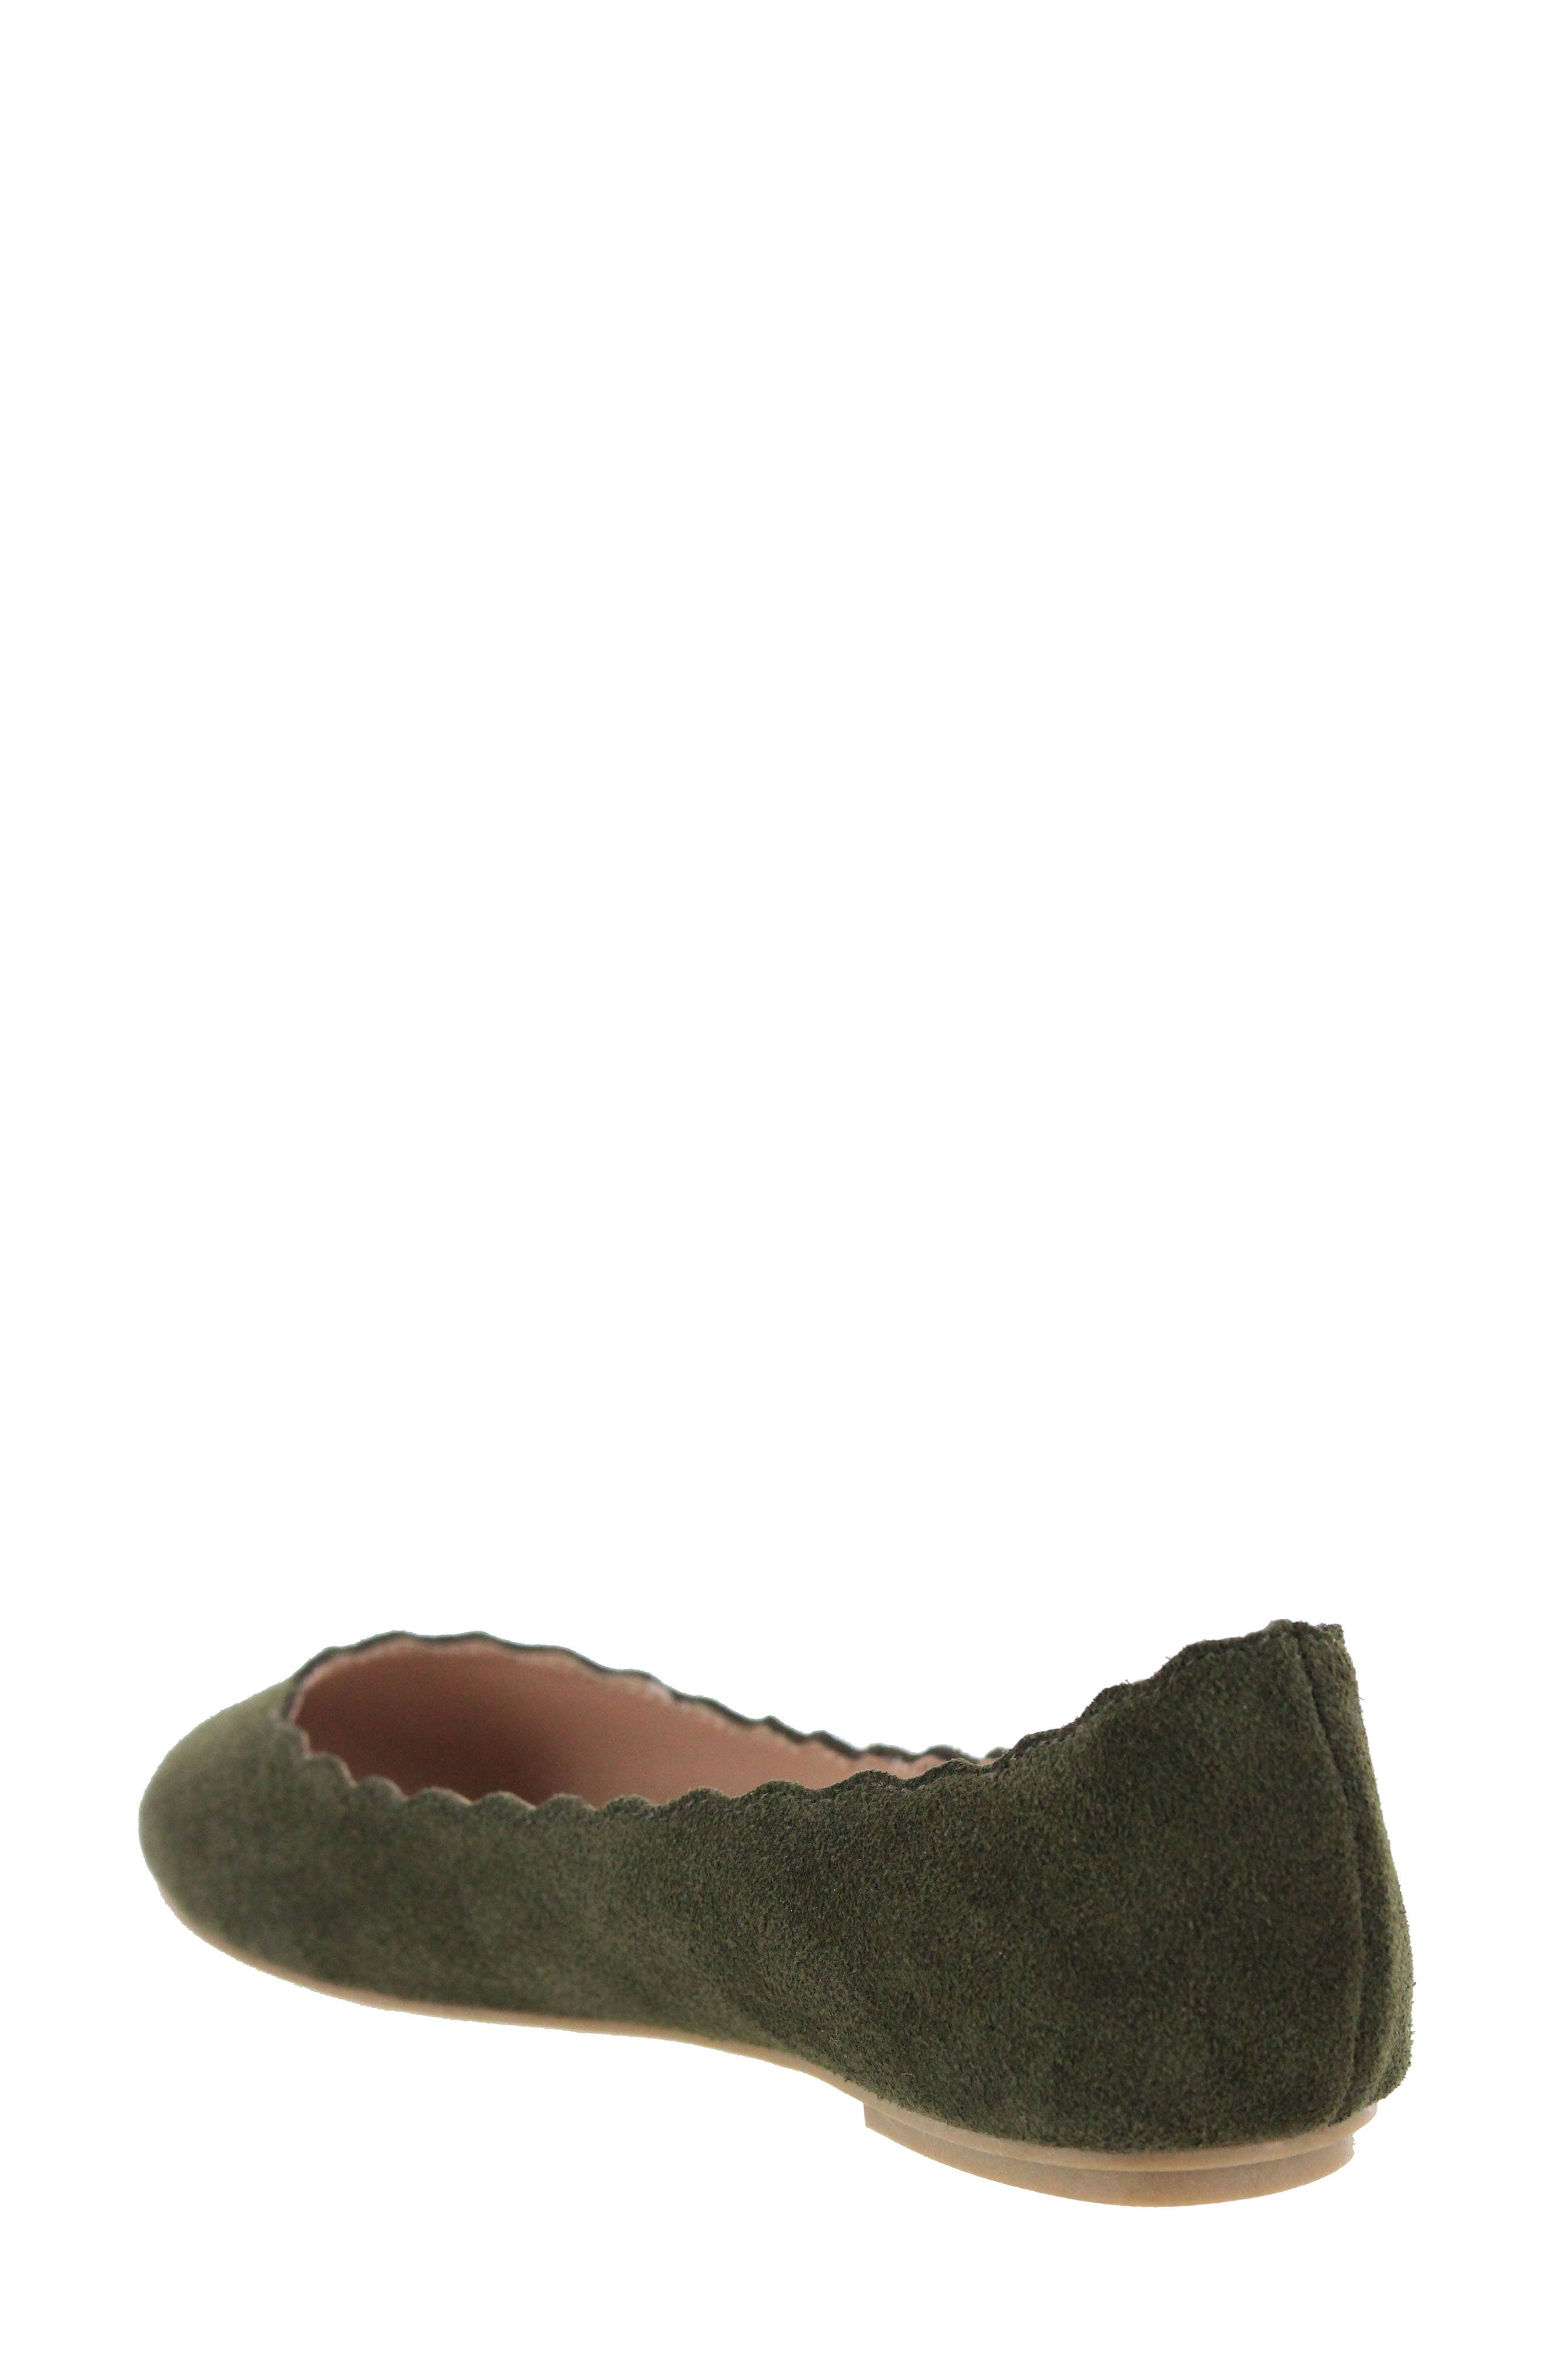 Gianna Scalloped Flat,                             Alternate thumbnail 2, color,                             Olive